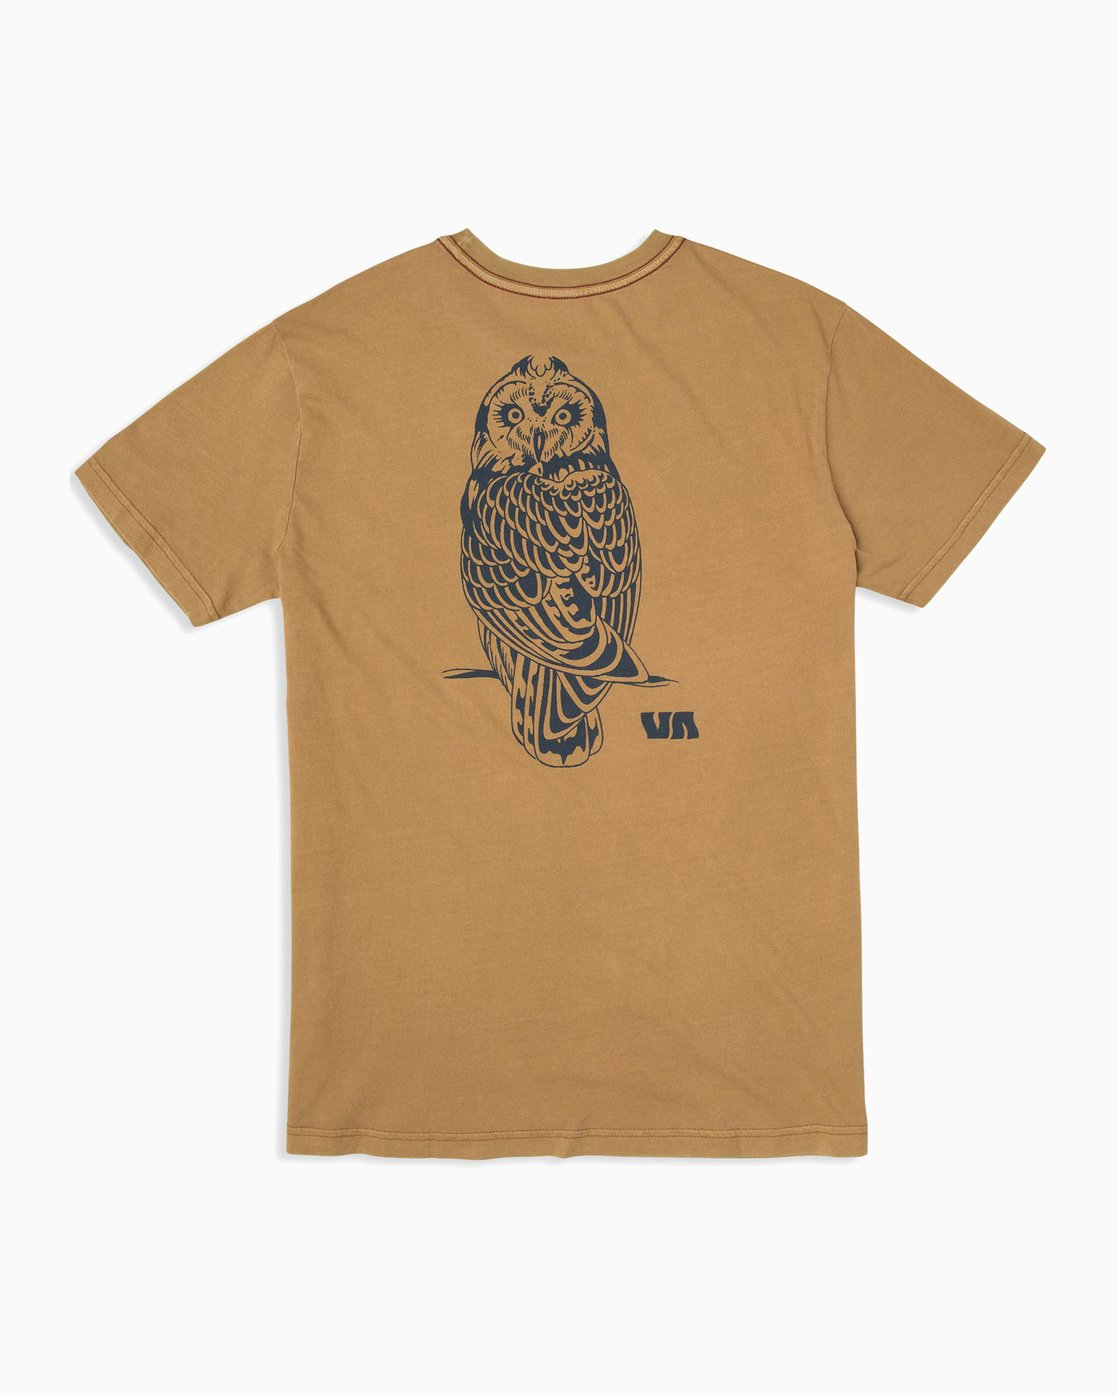 0 Alex Matus Pueo T-Shirt Brown M438TRPU RVCA